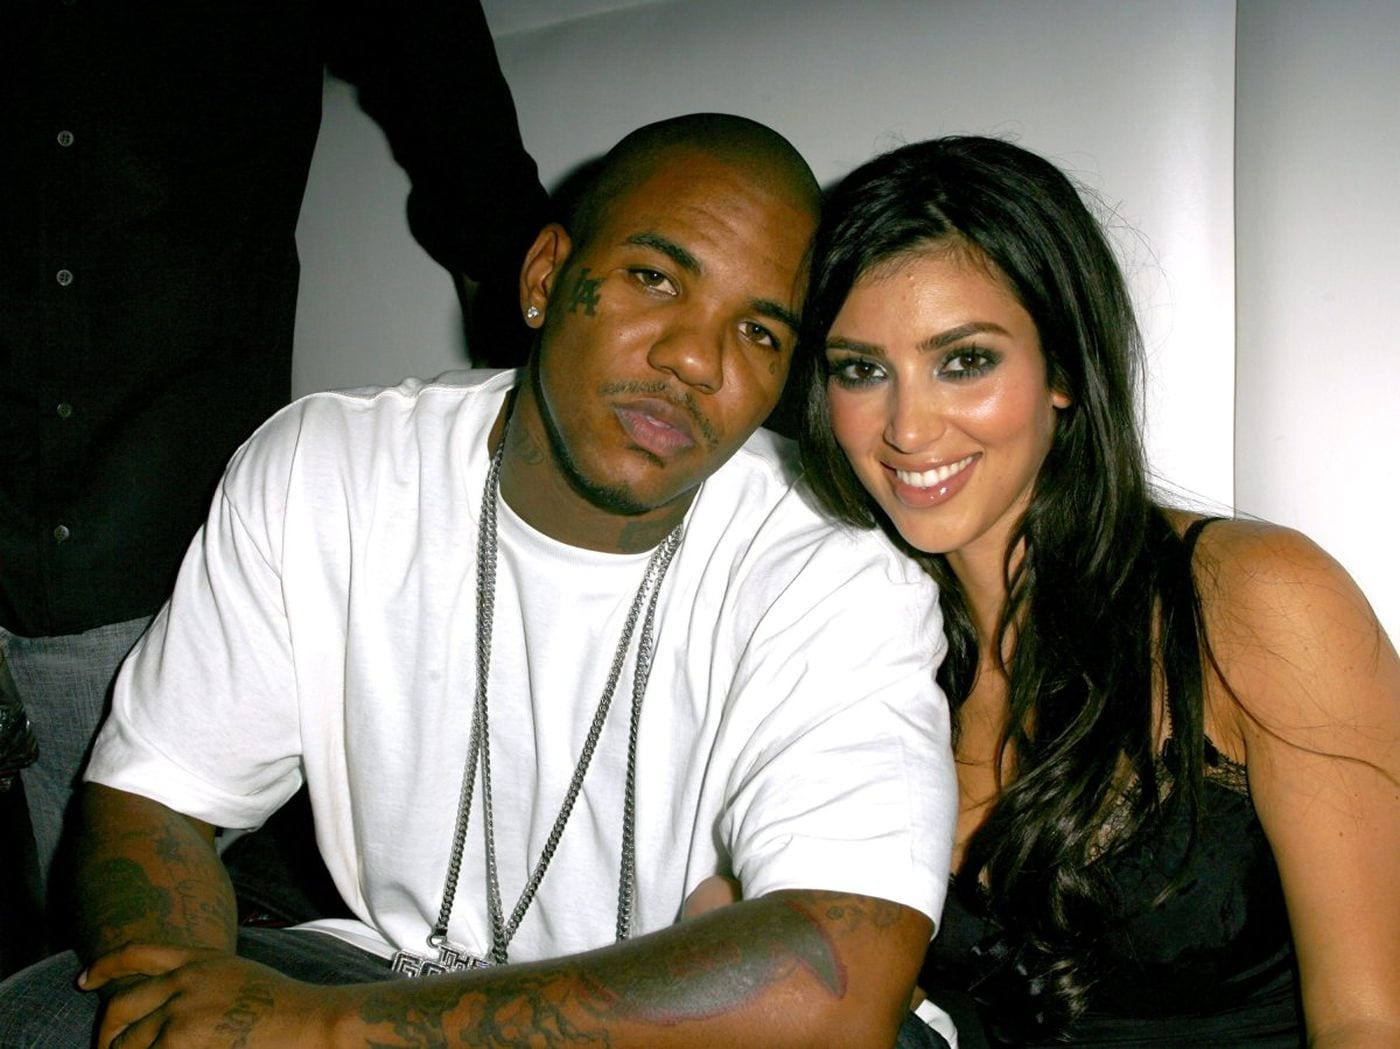 The Game Details Sexual Relationship With Kim Kardashian in New Song